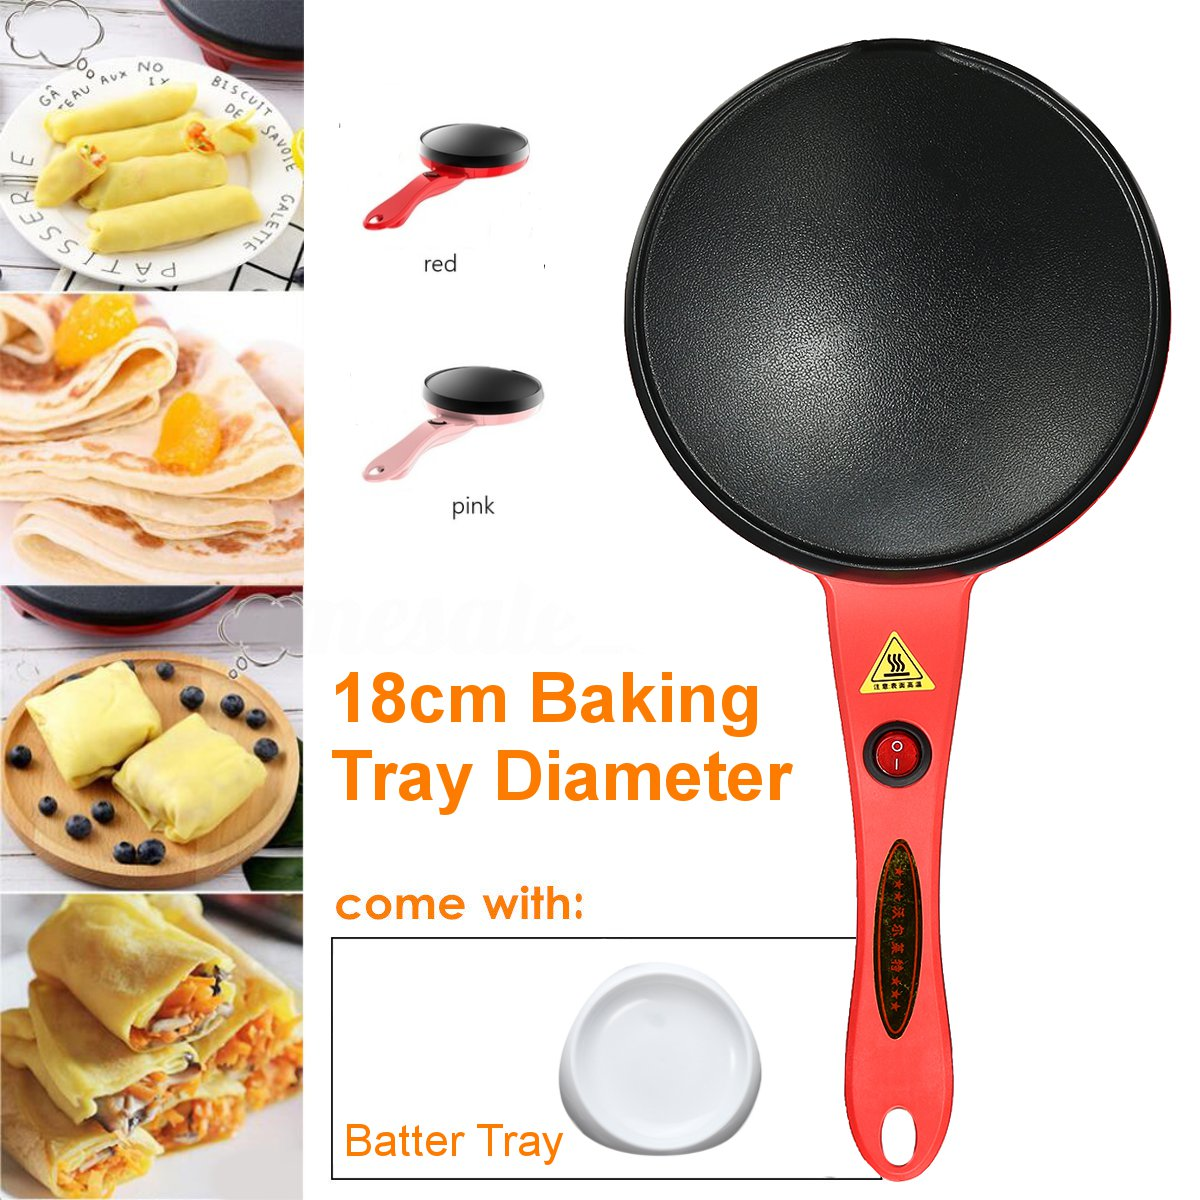 Electric Crepe Maker 220V 600W Non Stick Pancake Baking Pan Frying Griddle Pizza Machine Red Pink Kitchen Cooking Tools 18cm